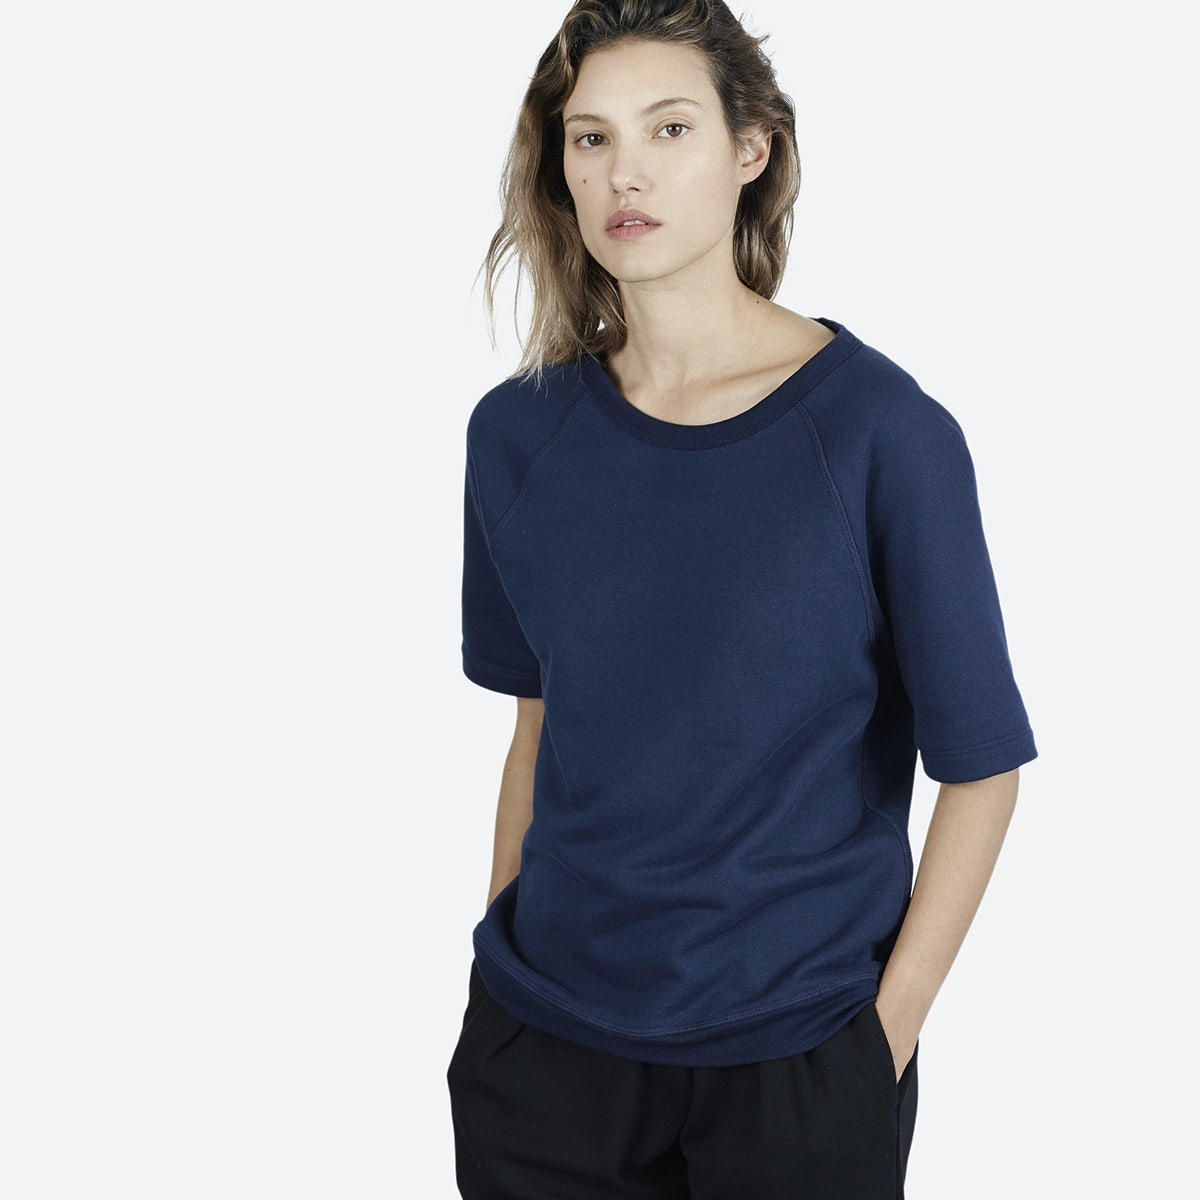 Women's Short-Sleeve Sweatshirt | Everlane